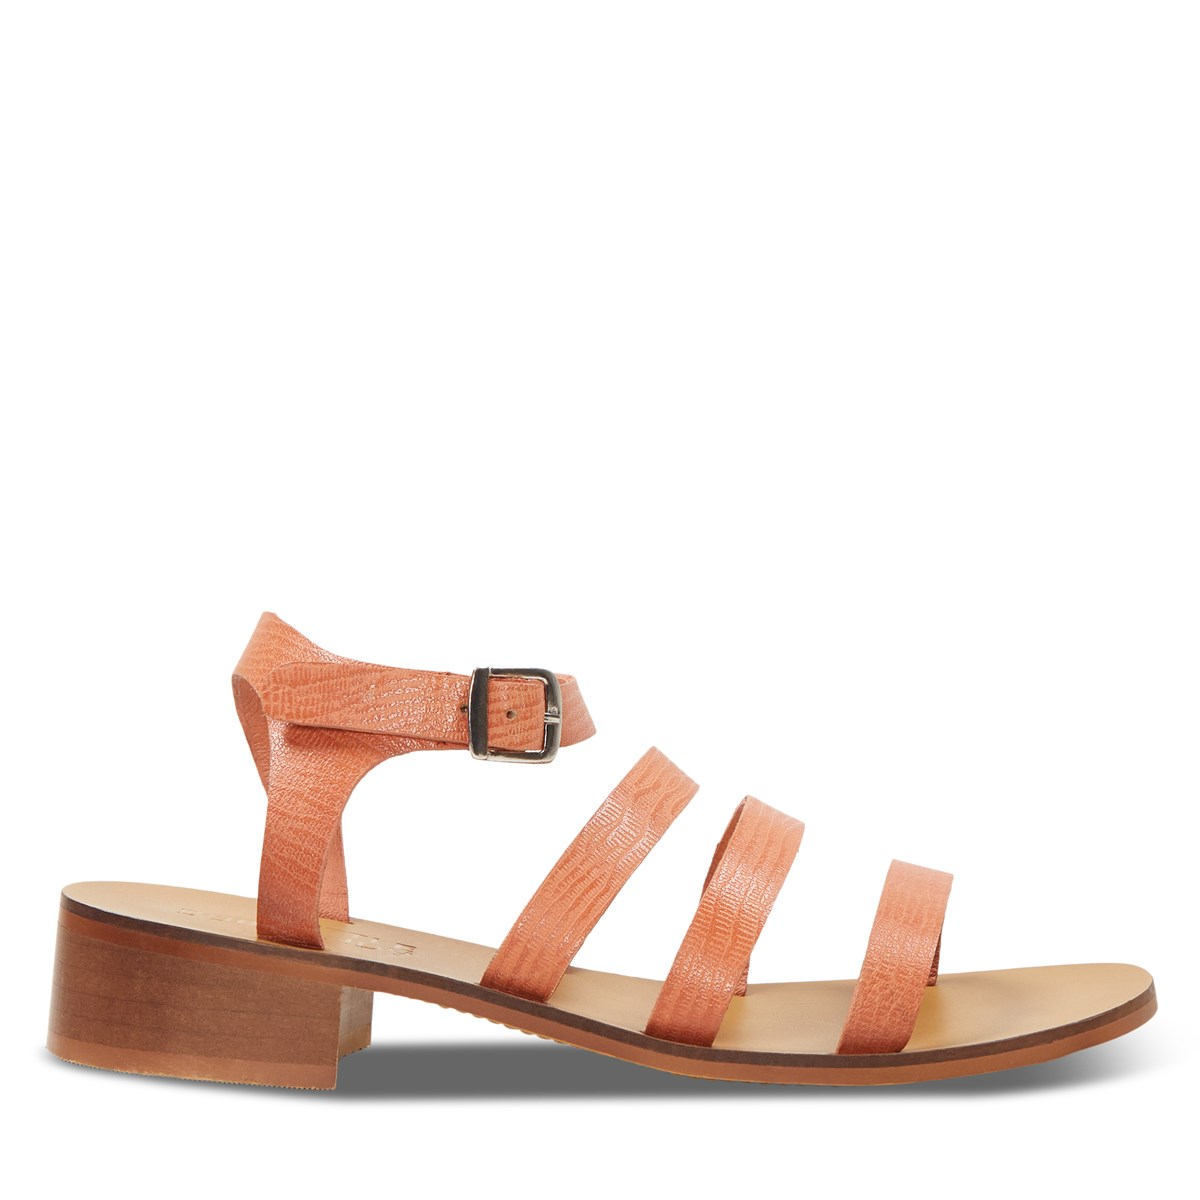 Women's Sadie Heeled Strapped Sandals in Peach